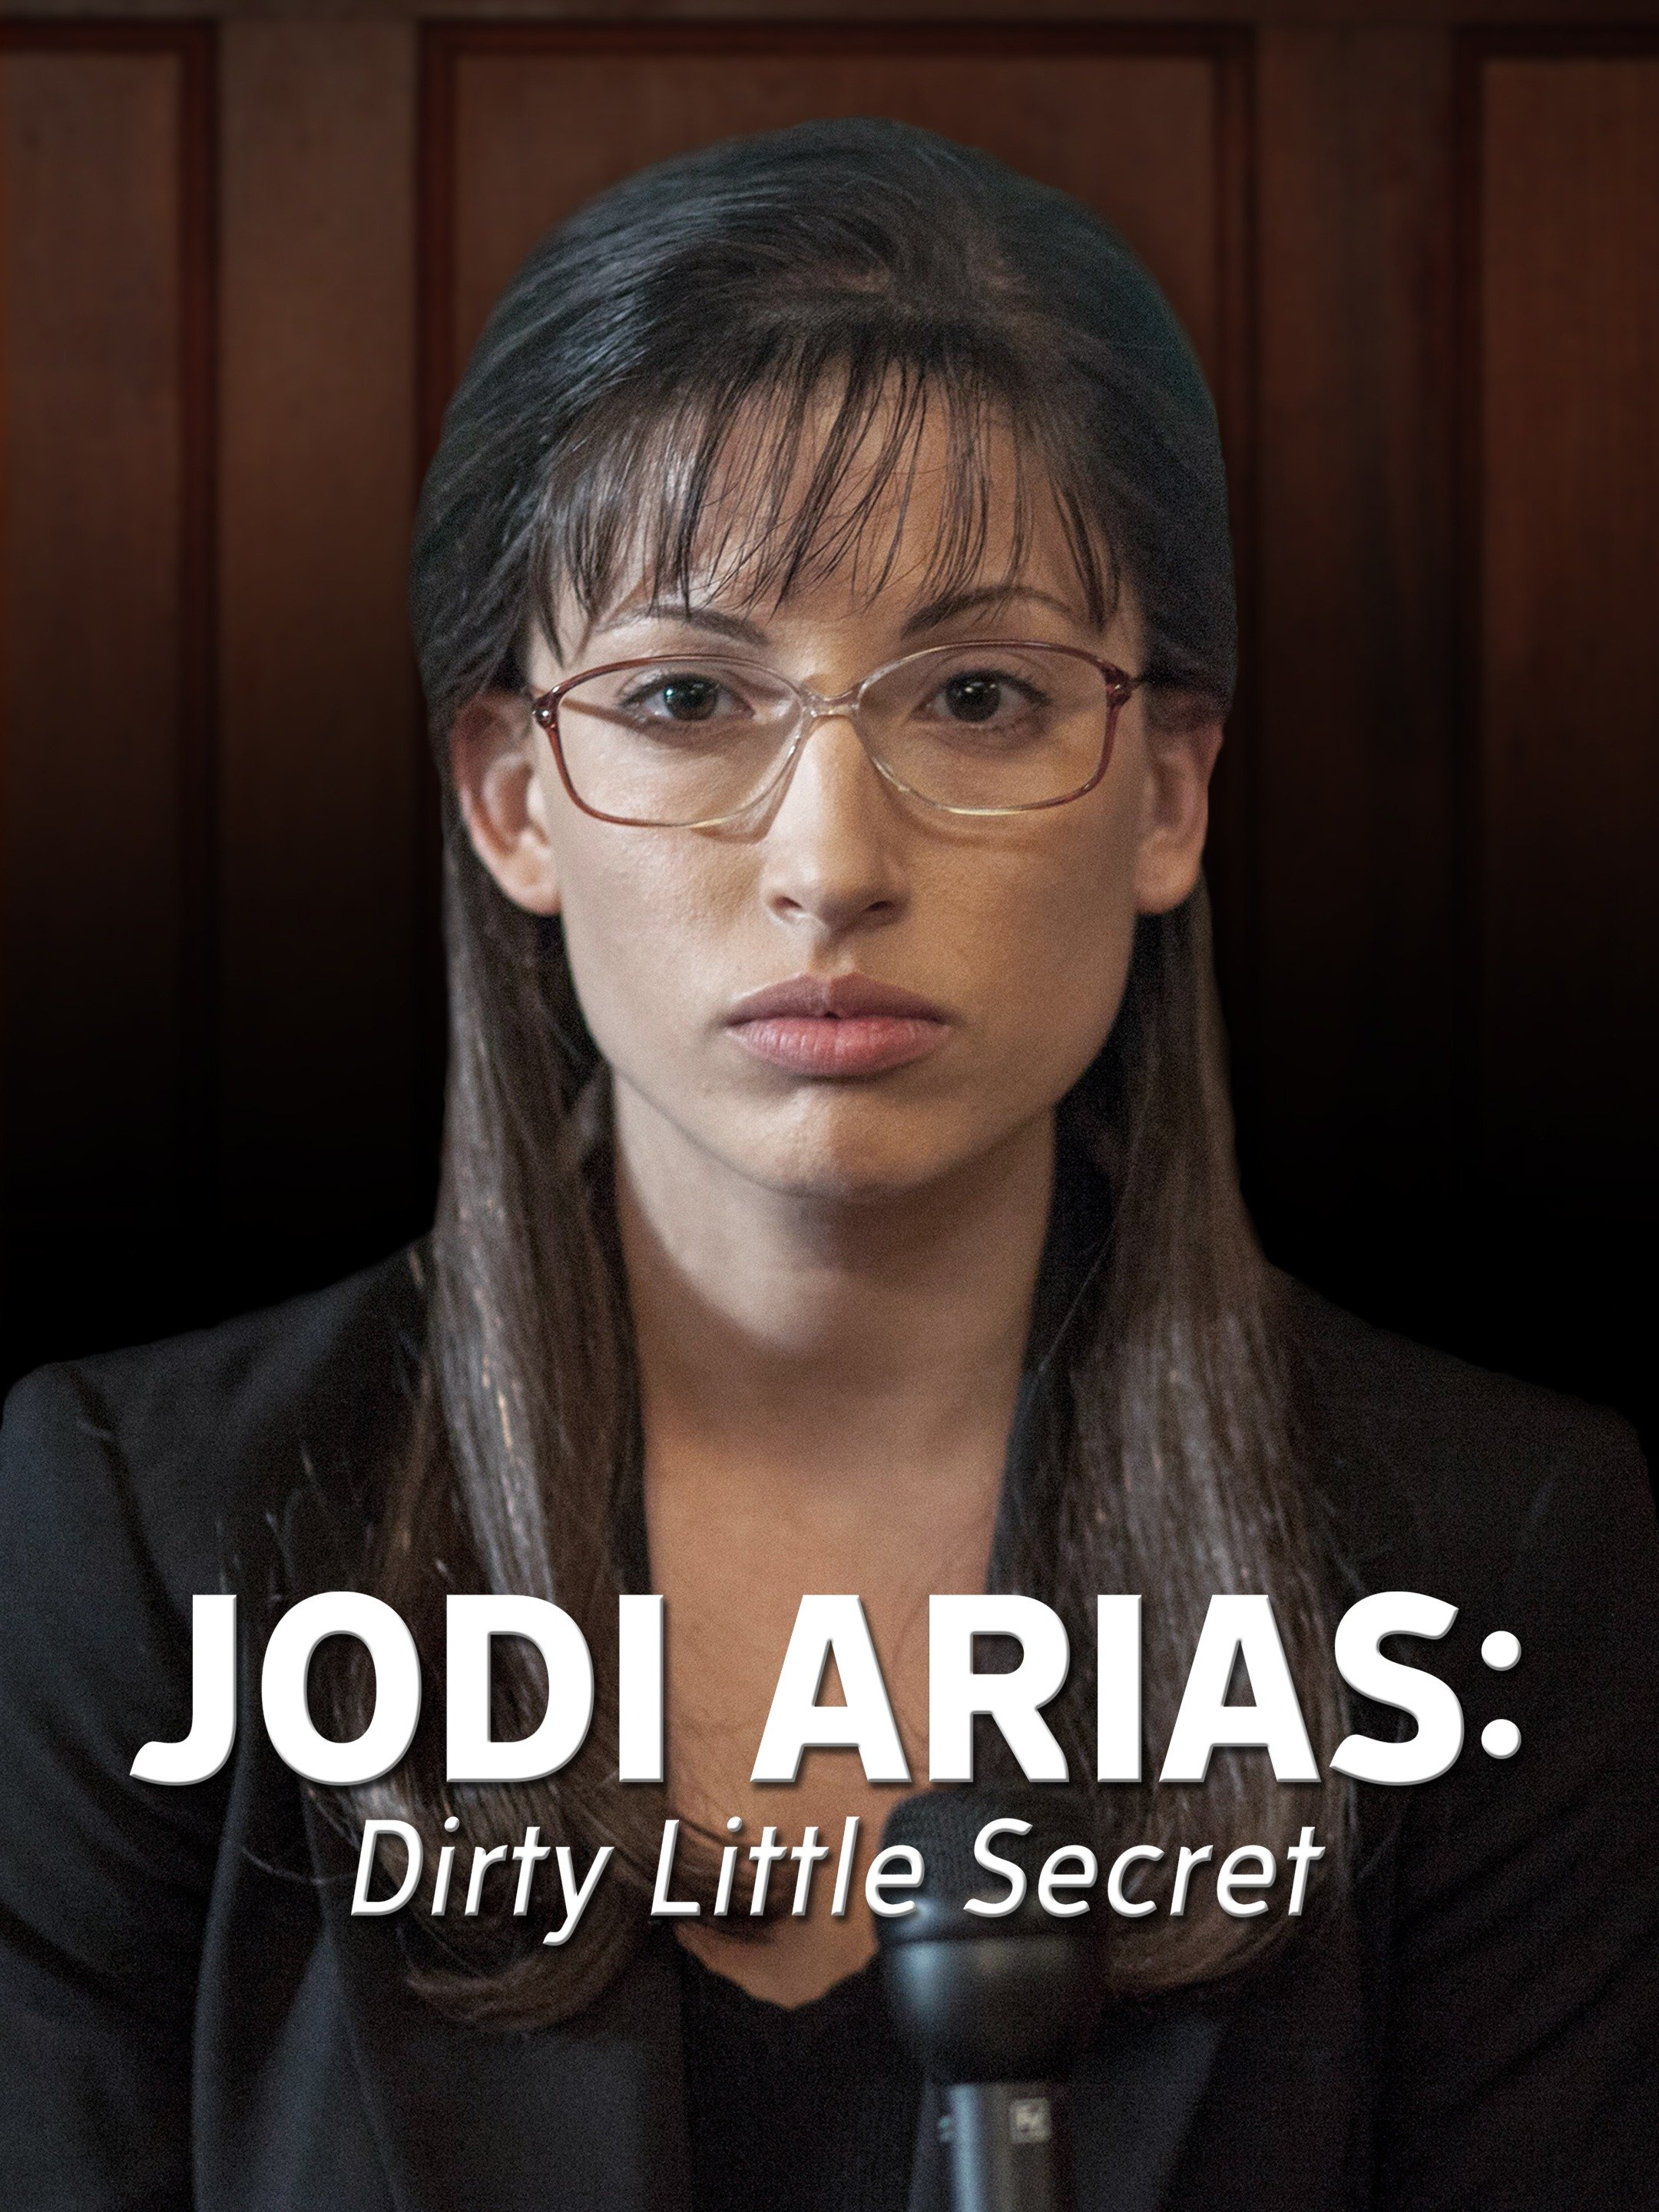 Jodi Arias Dirty Little Secret 2013 Rotten Tomatoes